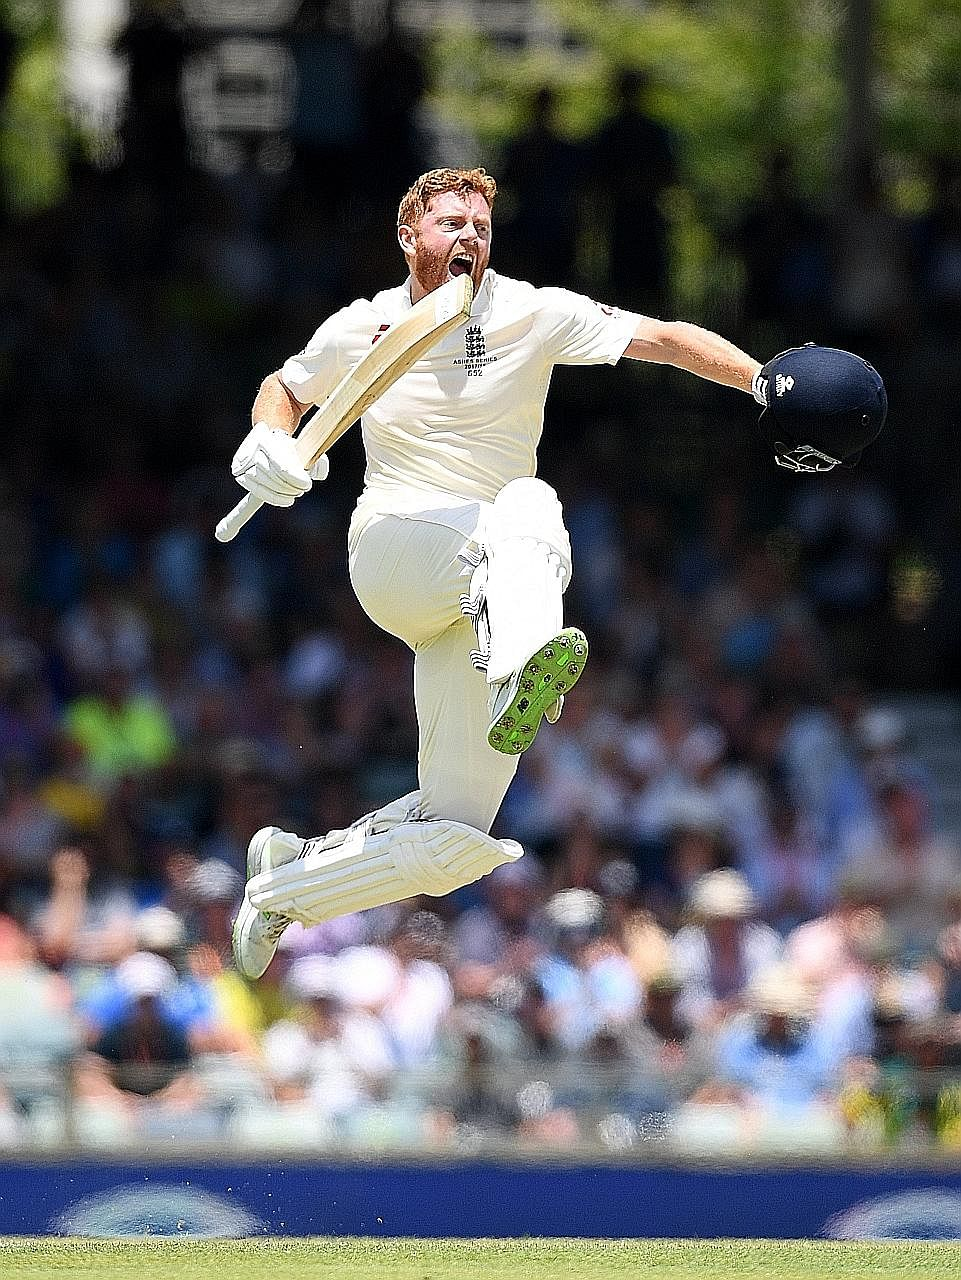 Bairstow celebrating his century, before England lost their last six wickets for just 35 runs, going from 368 fo